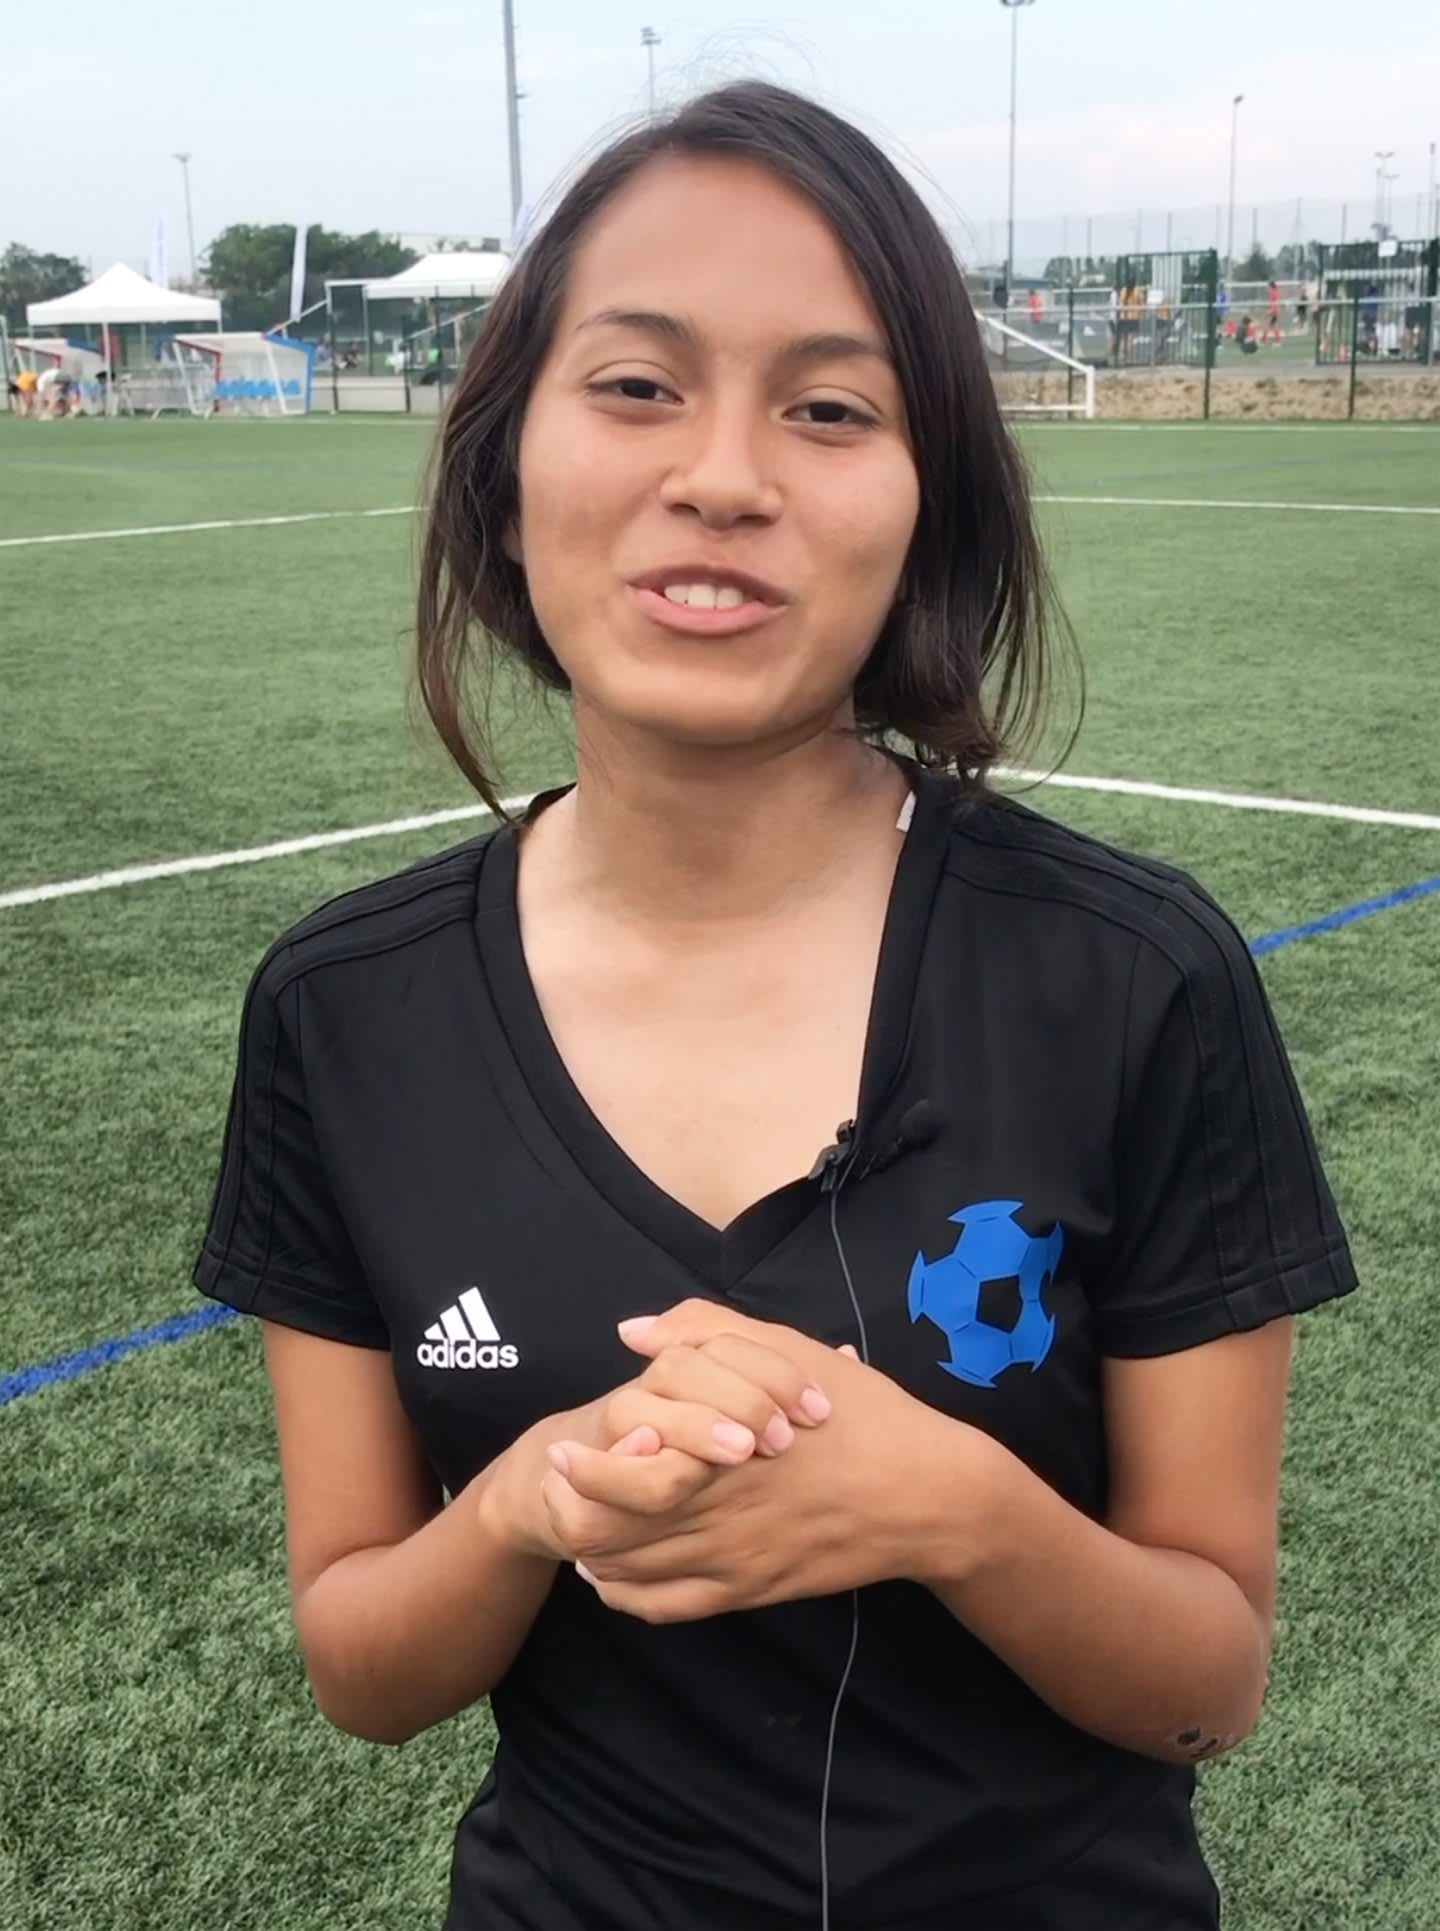 Girl on the Football Pitch | Social Impact